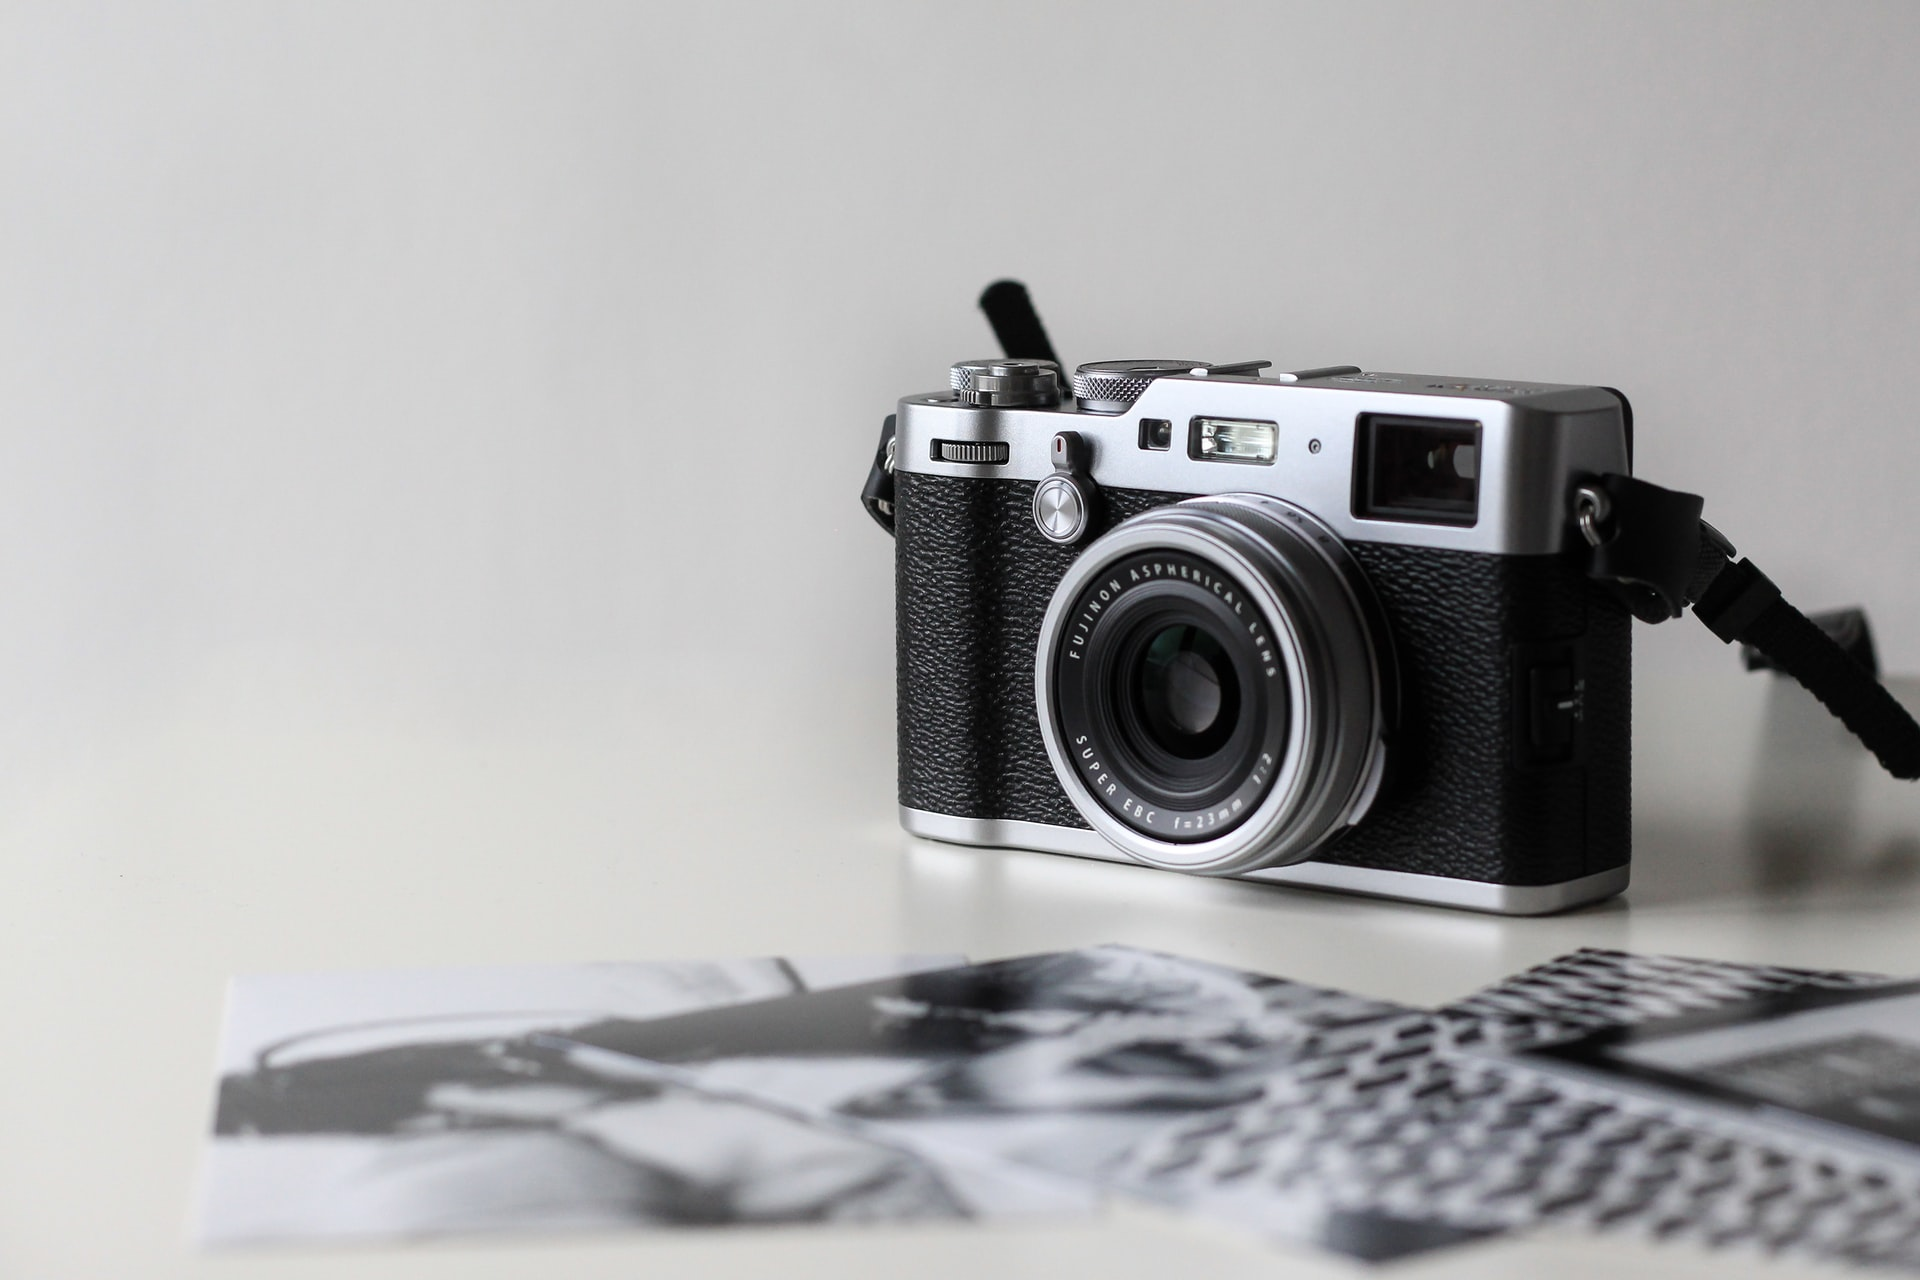 Is the Fujifilm X100F still worth buying for travel photography in 2020? (Review)